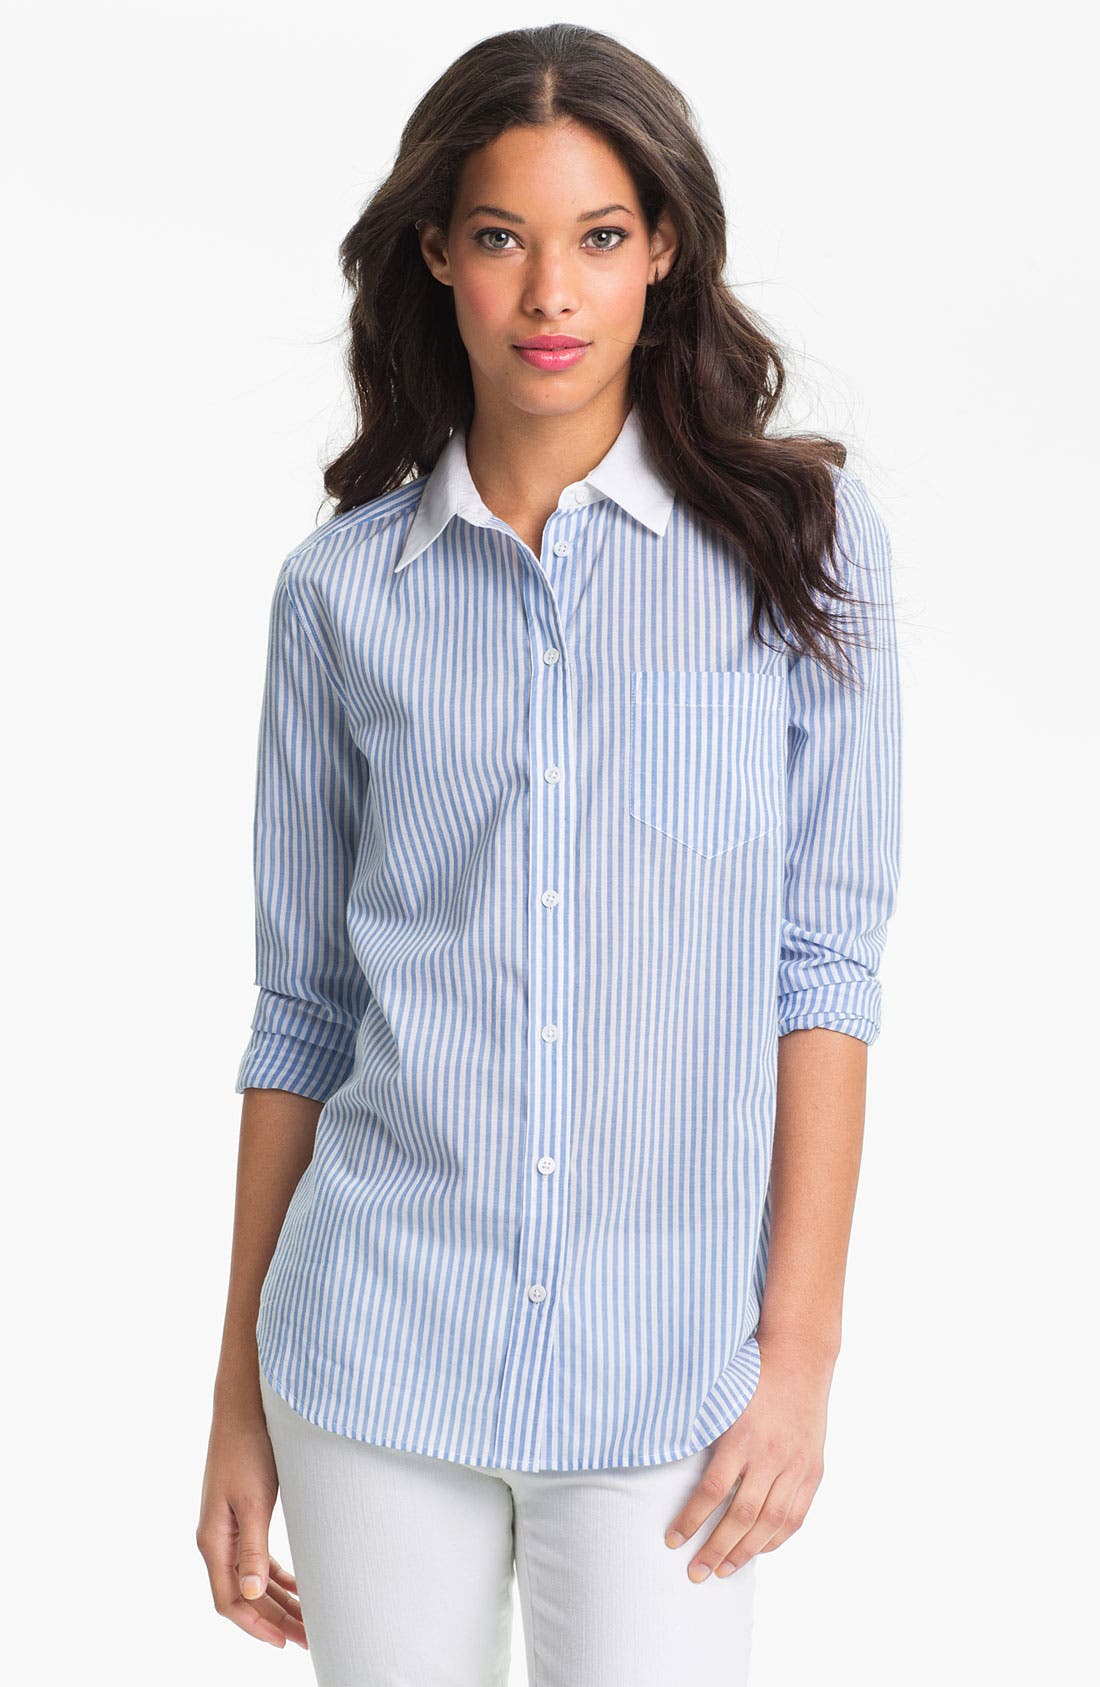 Main Image - Equipment 'Reese' Cotton Shirt